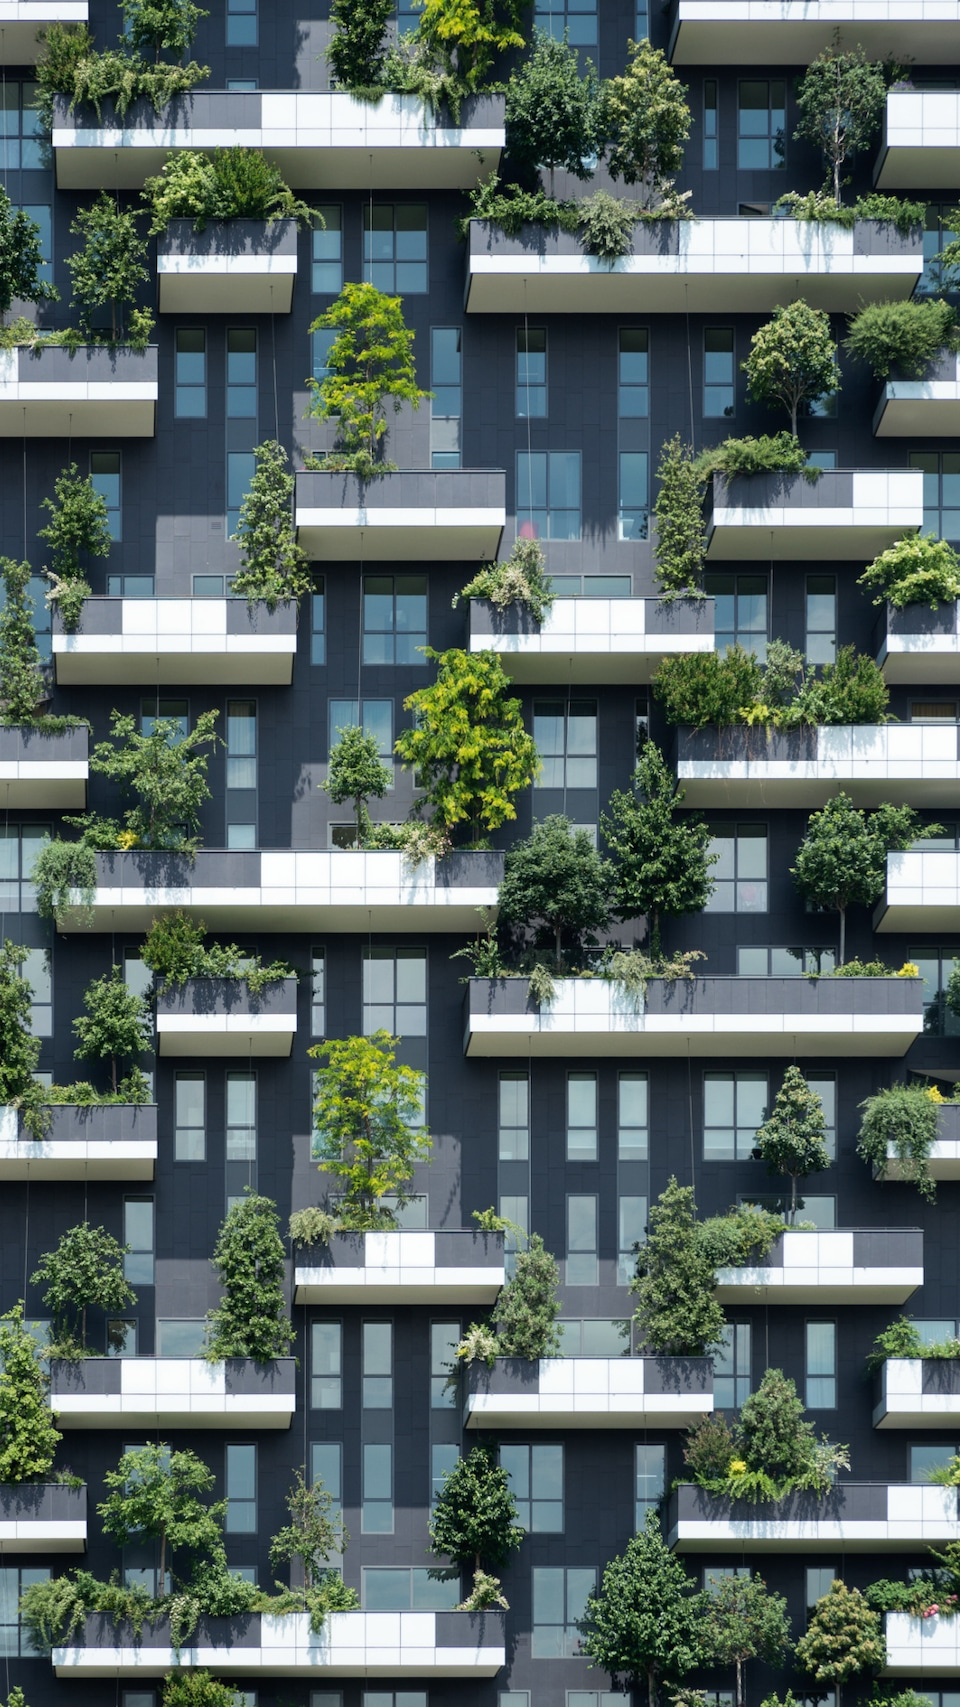 The Bosco Verticale (vertical forest) in Milan consists of twin towers with expansive balconies on all sides that accommodate roughly 700 trees, 5,000 shrubs as well as thousands of creepers and flowering shrubs.